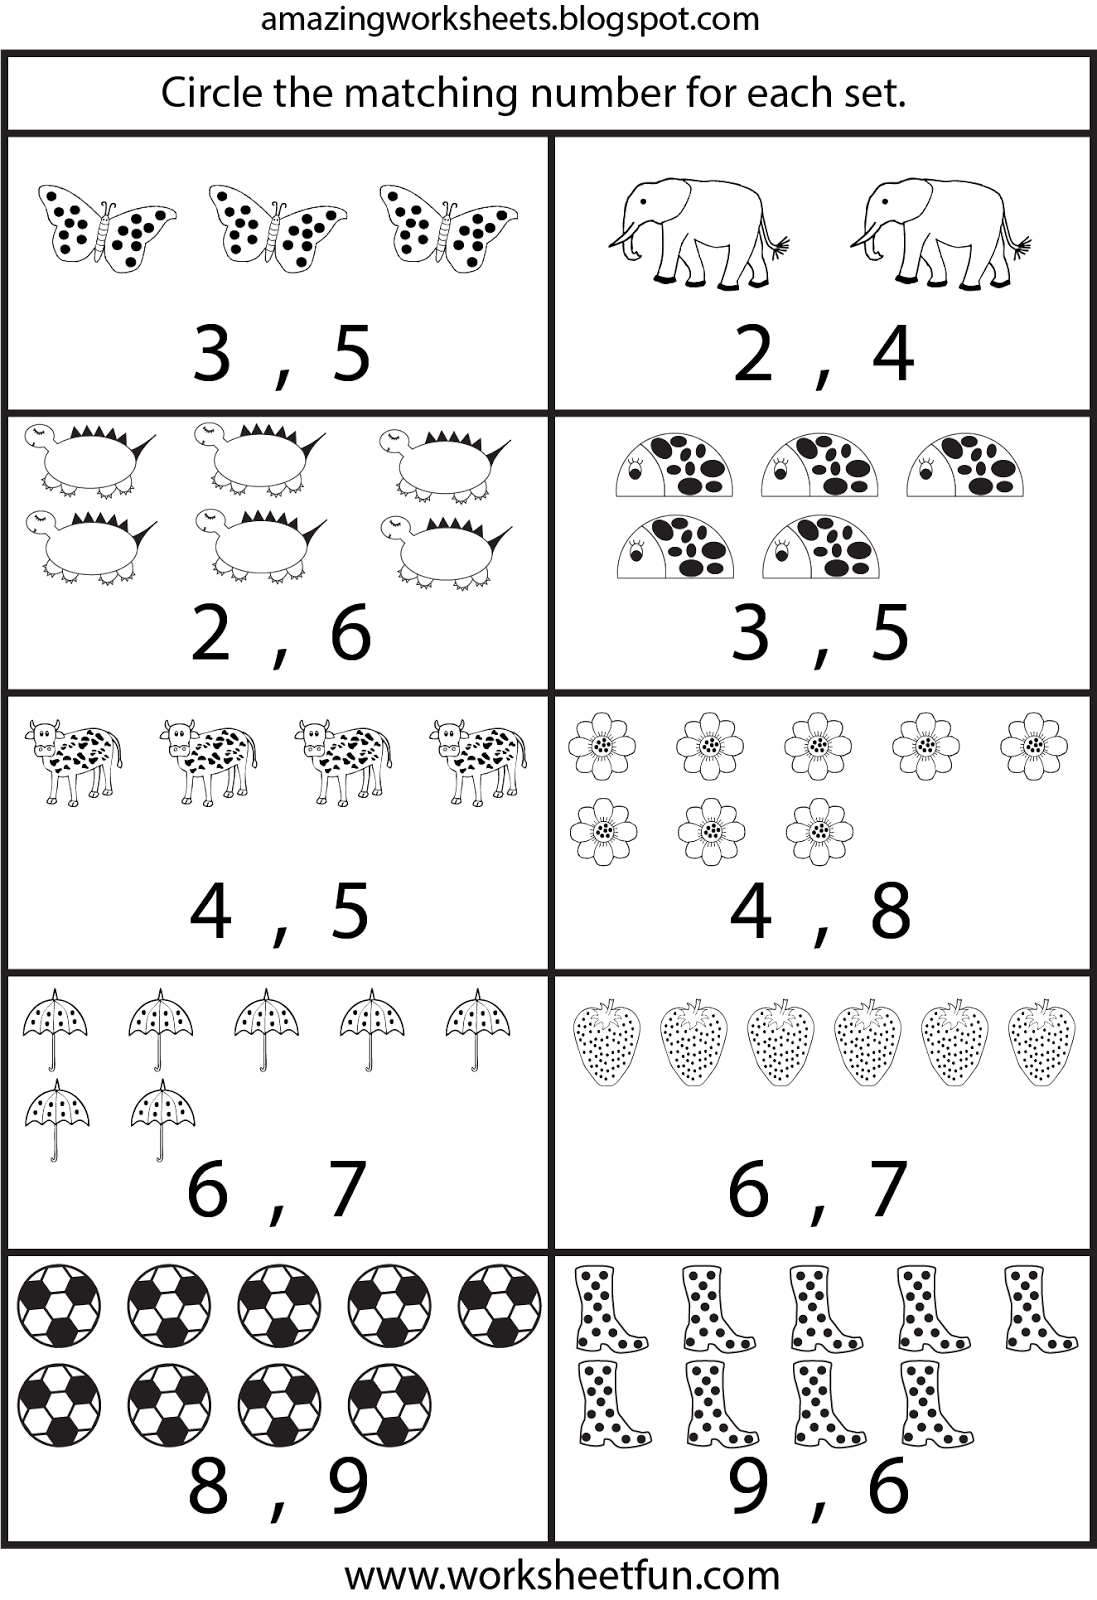 Worksheetfun - FREE PRINTABLE WORKSHEETS   Preschool math worksheets [ 1600 x 1097 Pixel ]